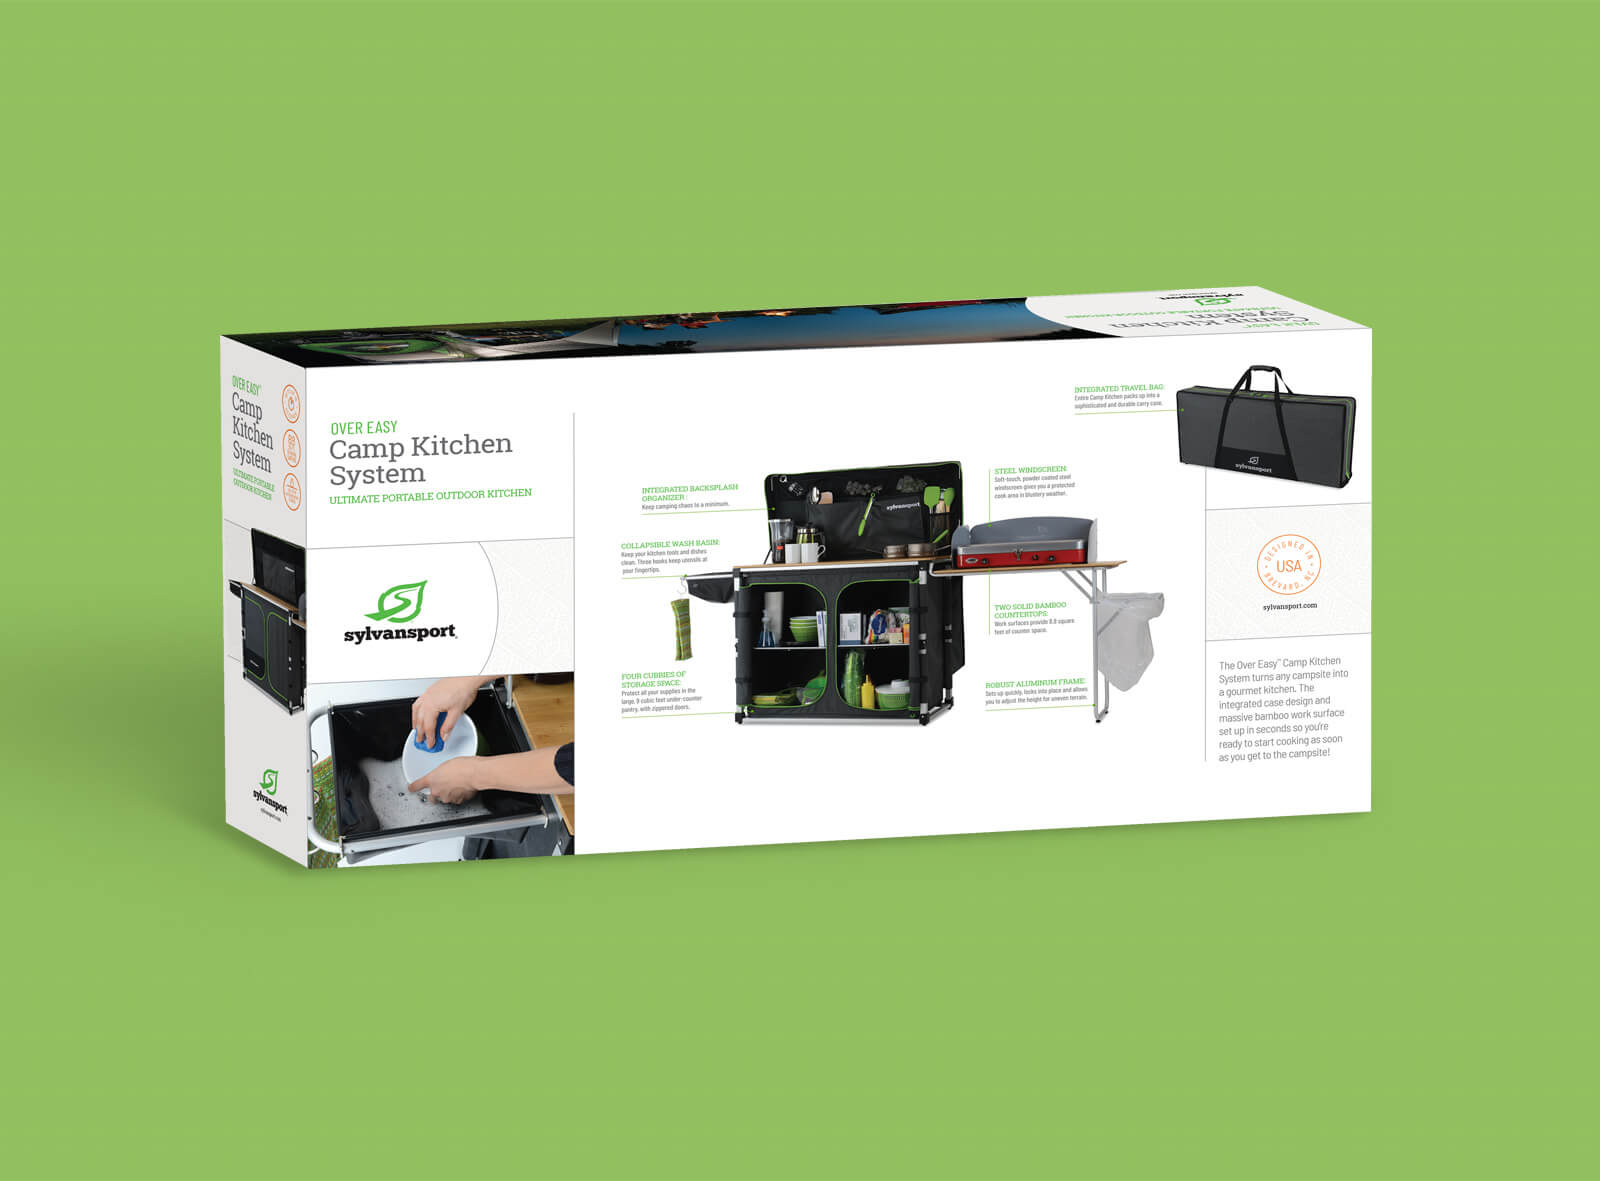 The back of Sylvan Sport packaging box for Camp Kitchen System against green background shows features and technical drawing of the product and lifestyle imagery of the kitchen in use.